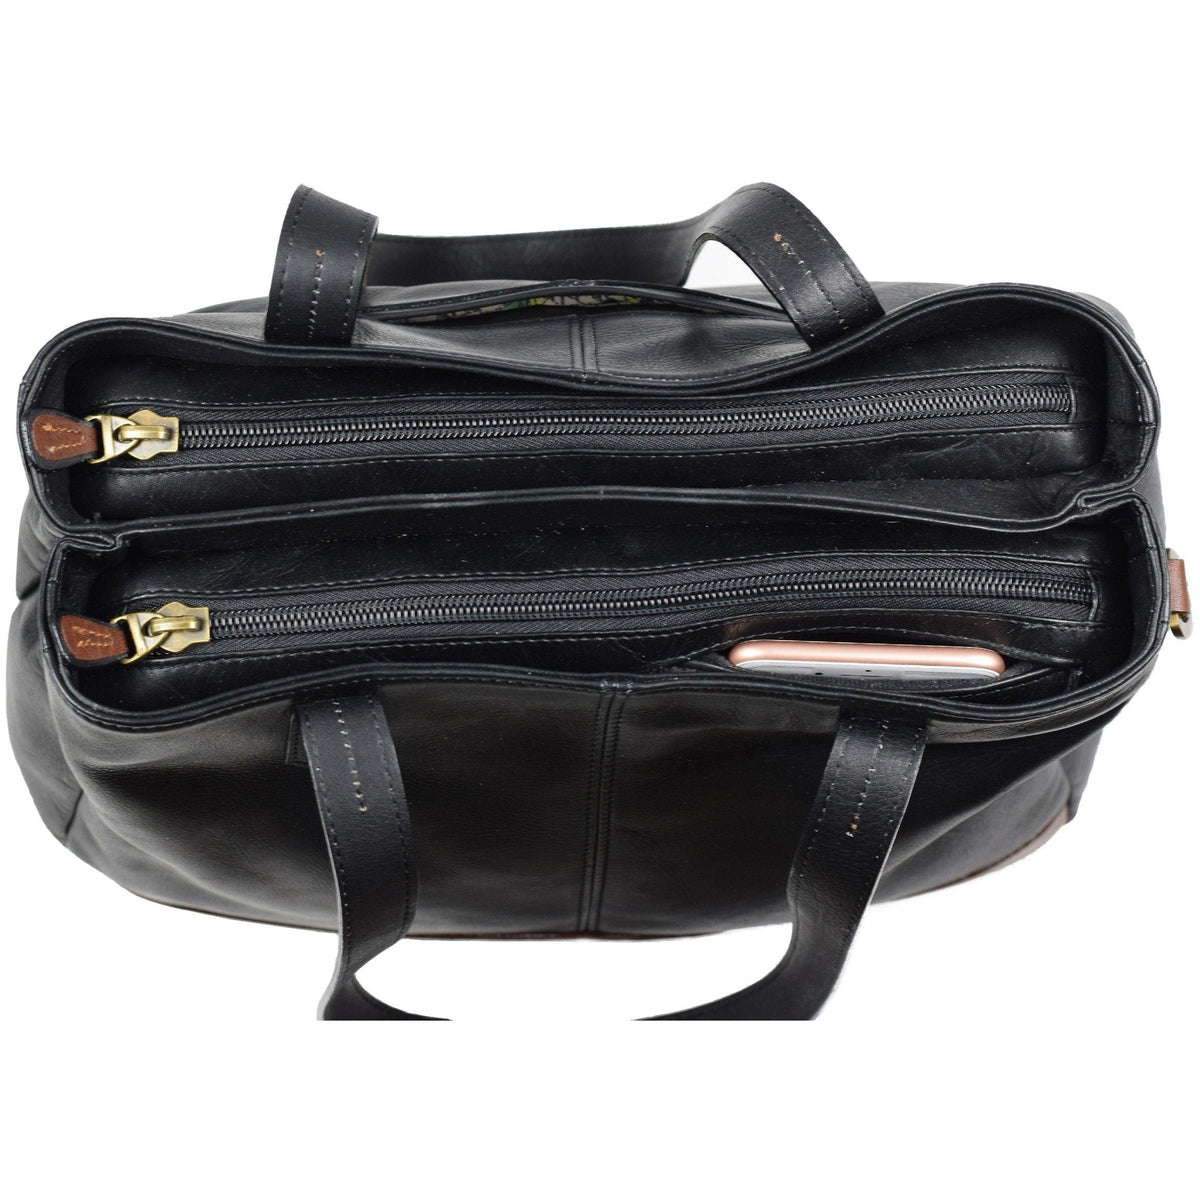 Santa Fe Double Trippers Bag